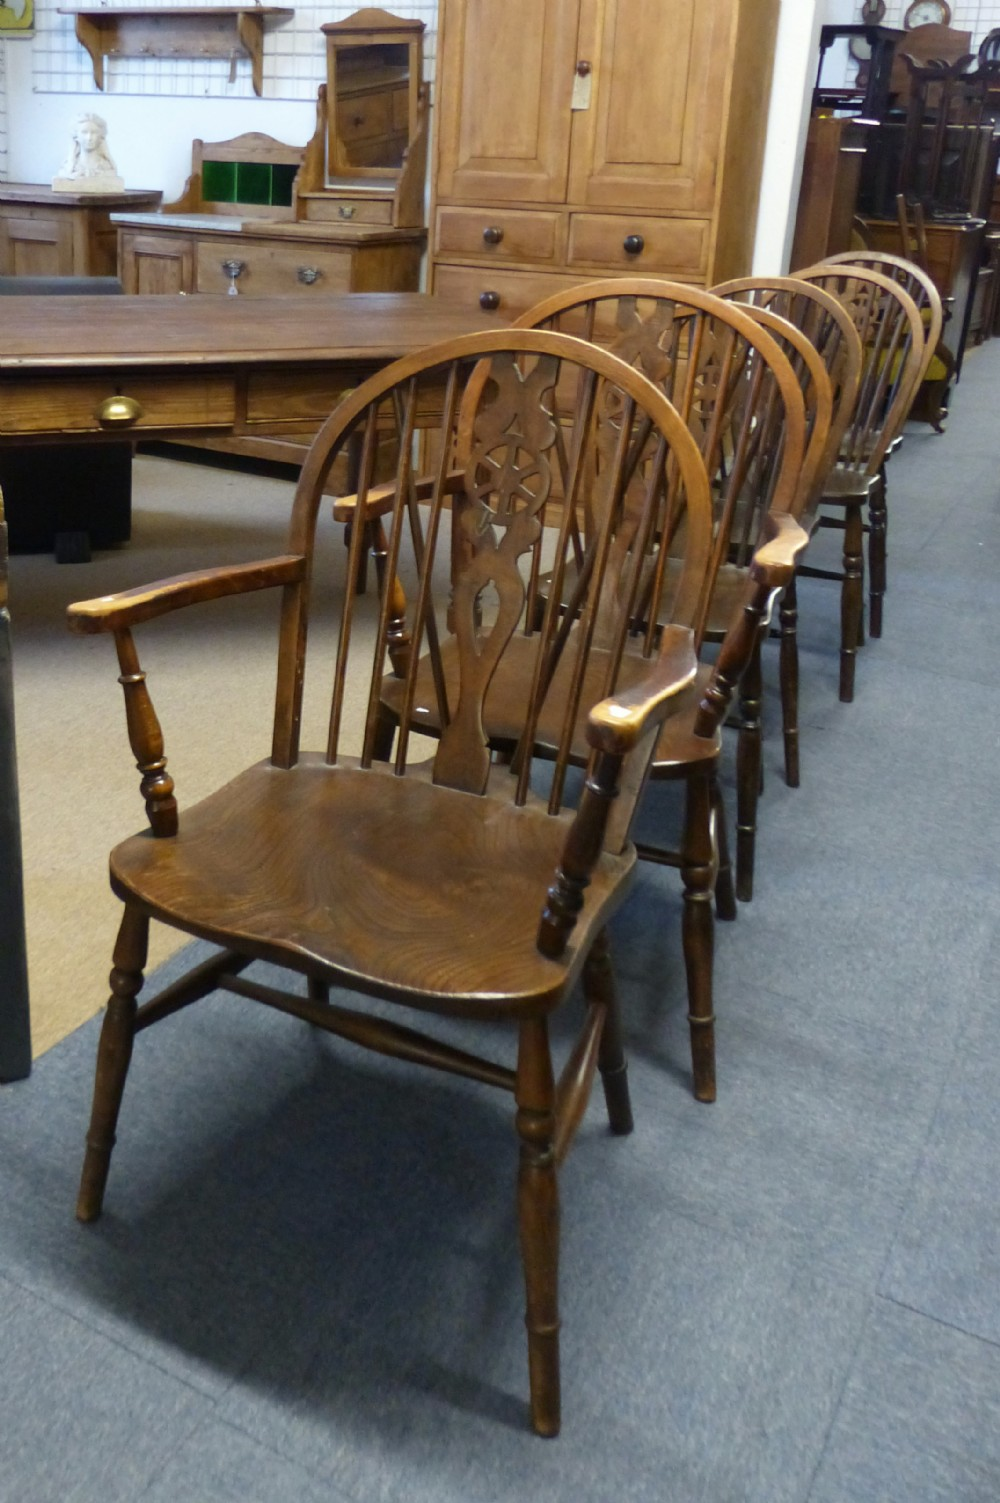 6 country chairs